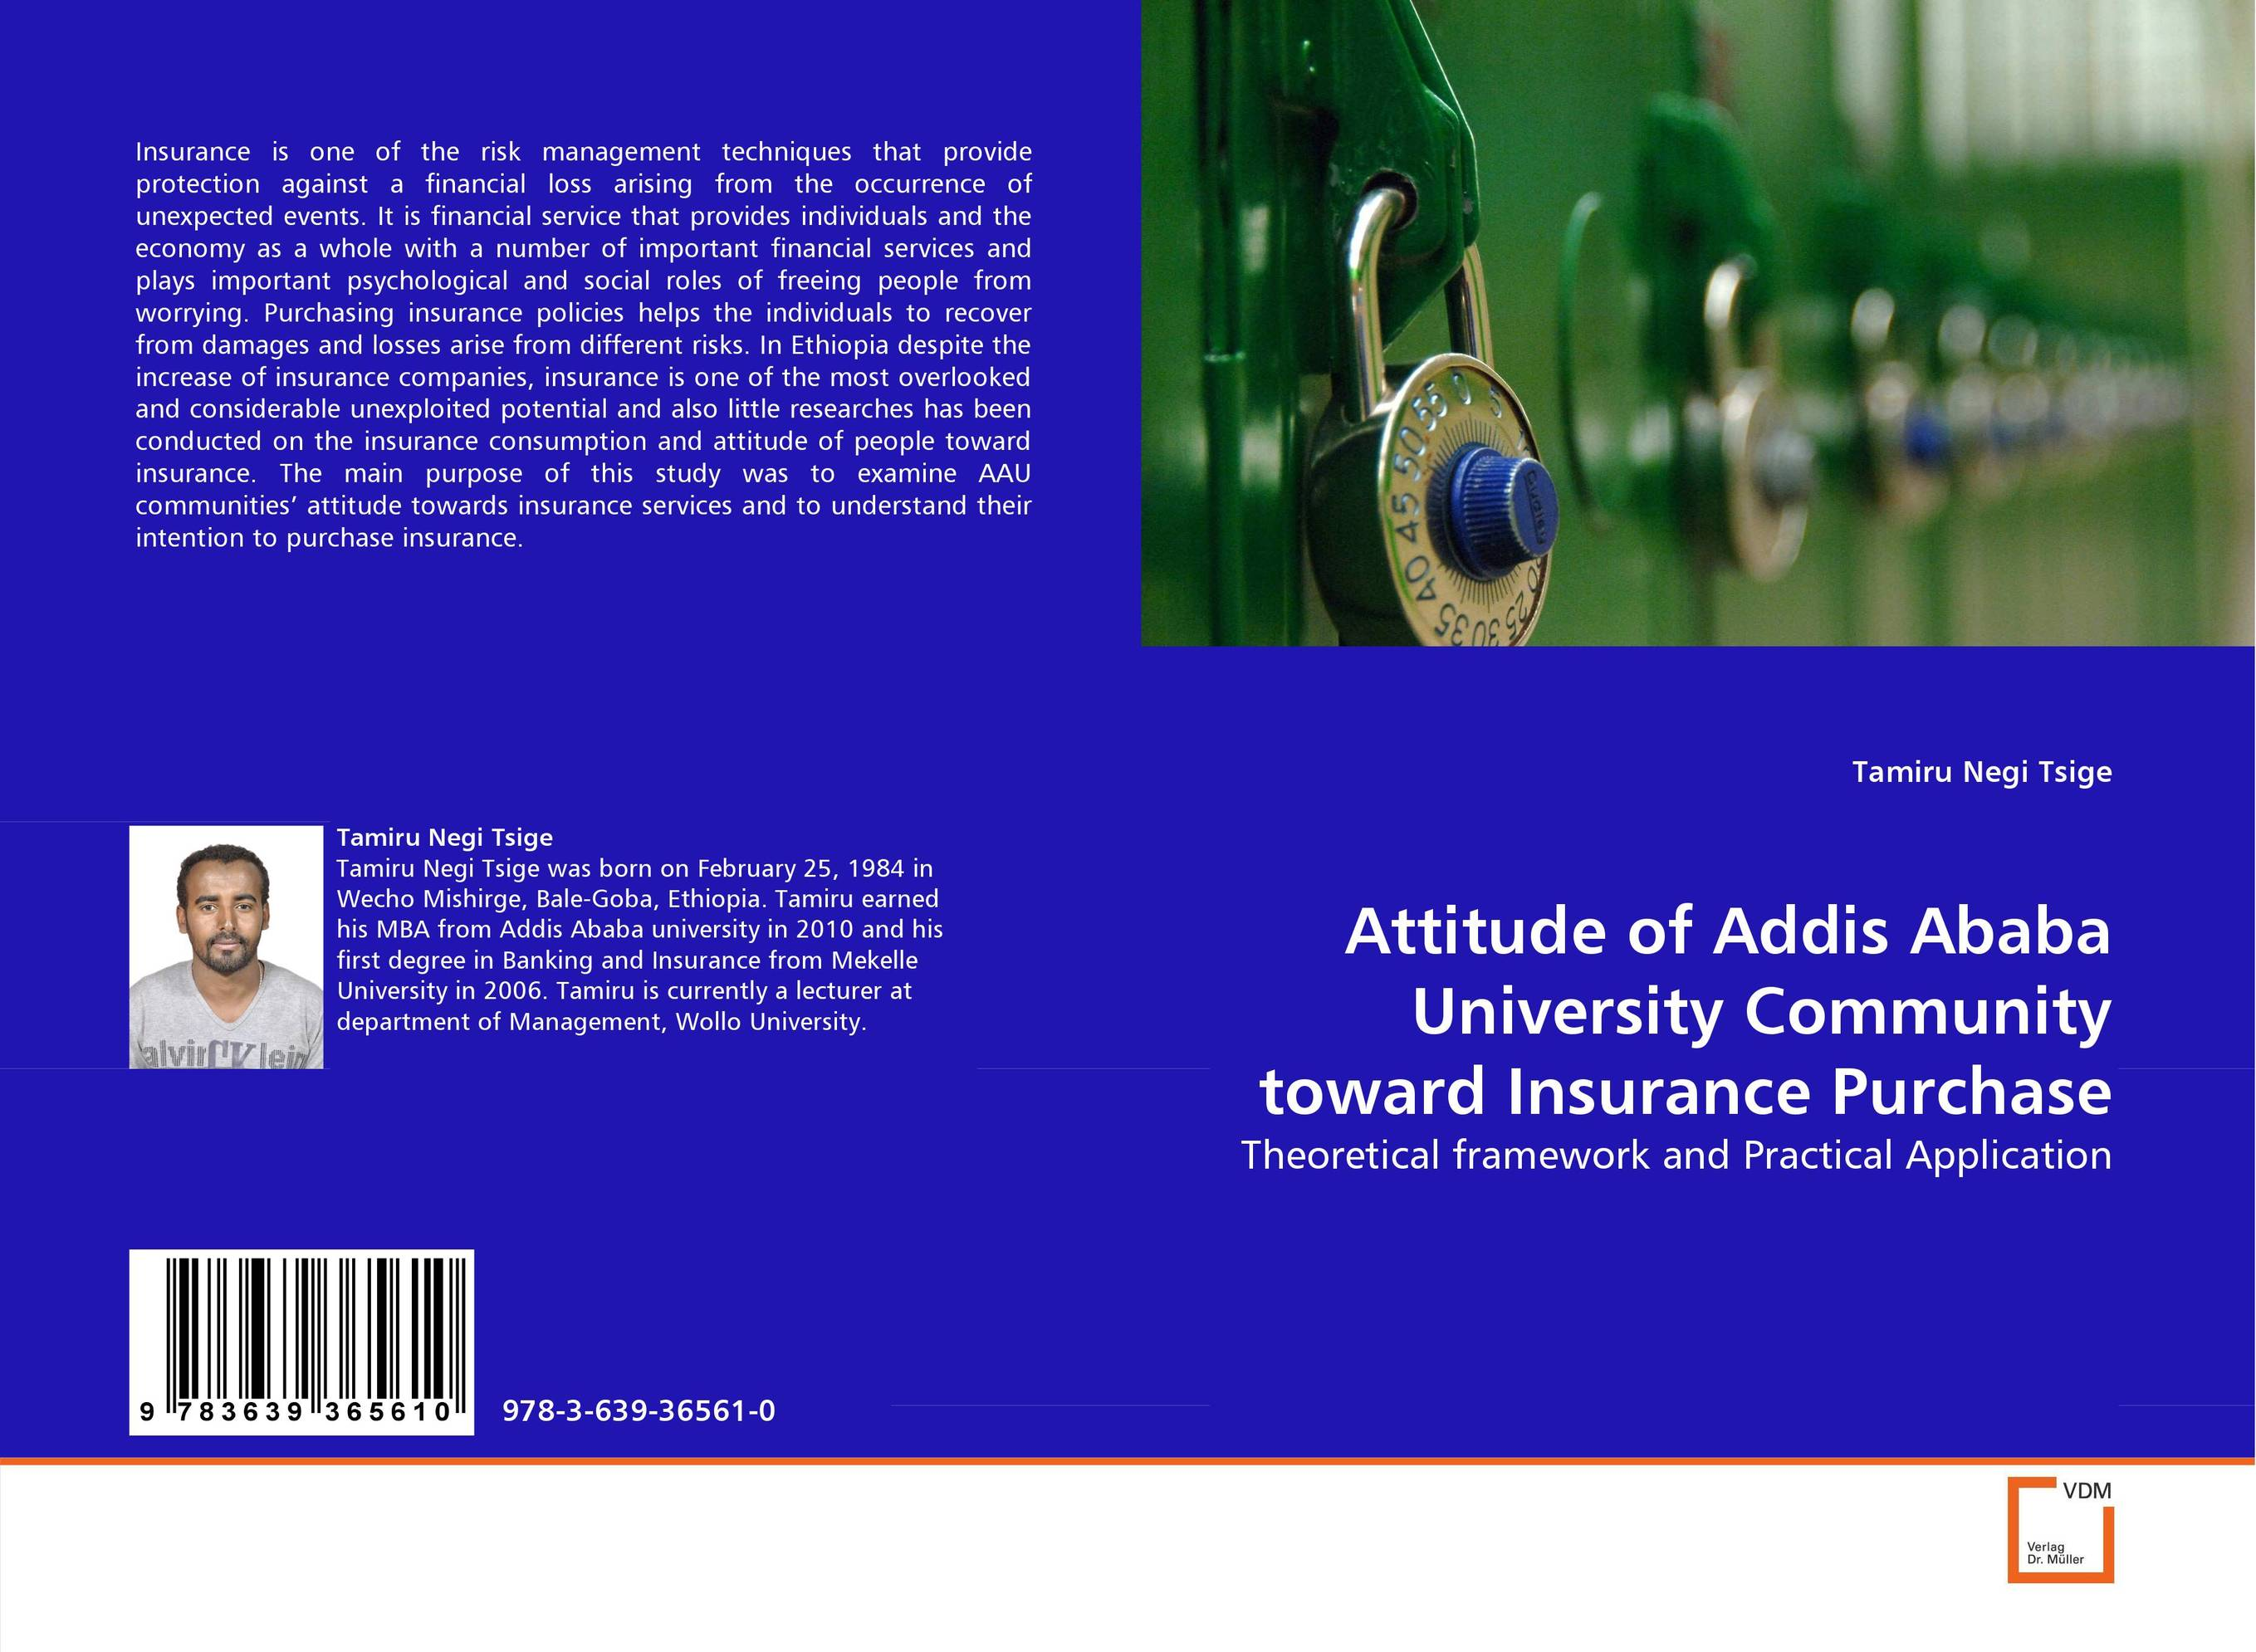 Attitude of Addis Ababa University Community toward Insurance Purchase